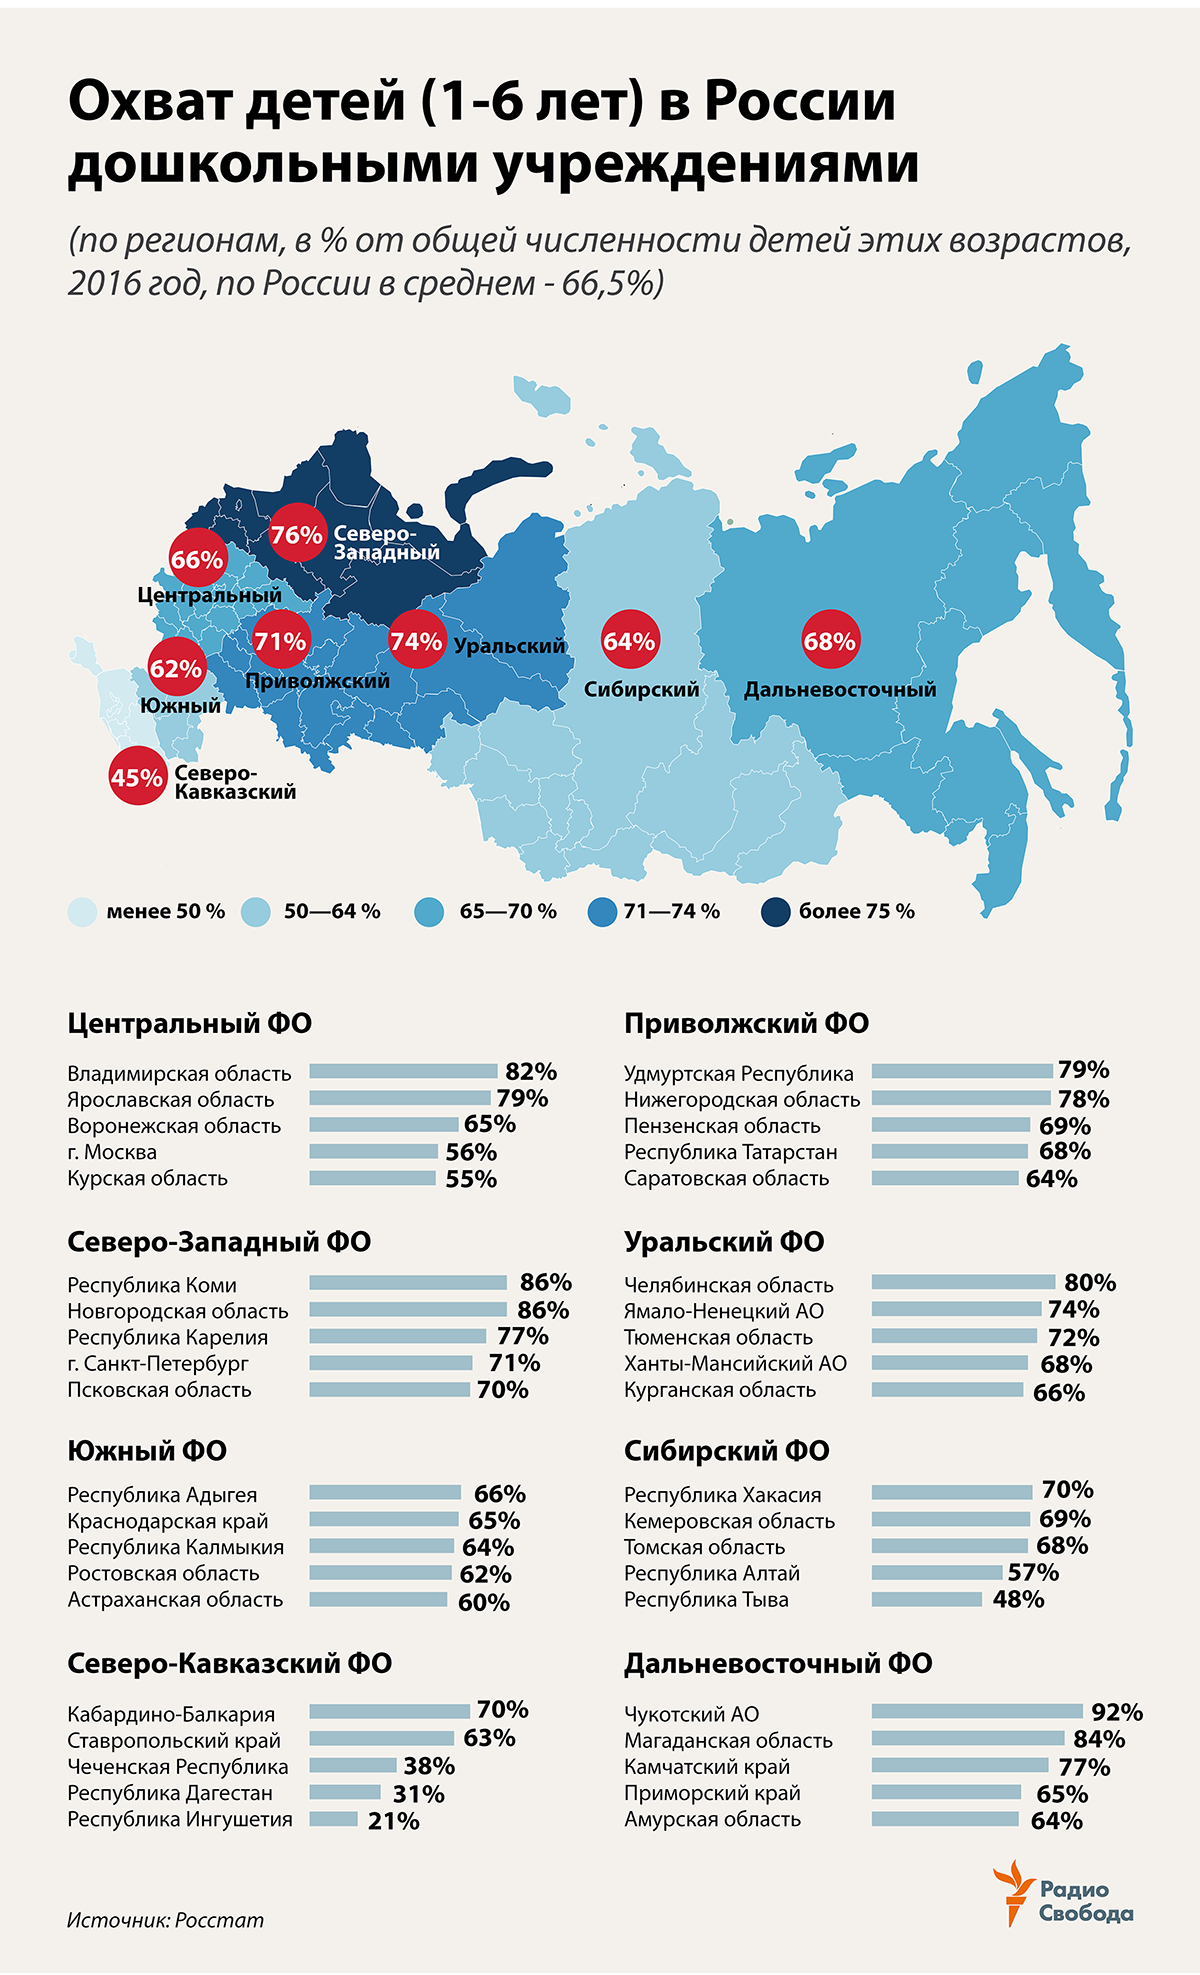 Russia-Factograph-Preschool Education-Coverage